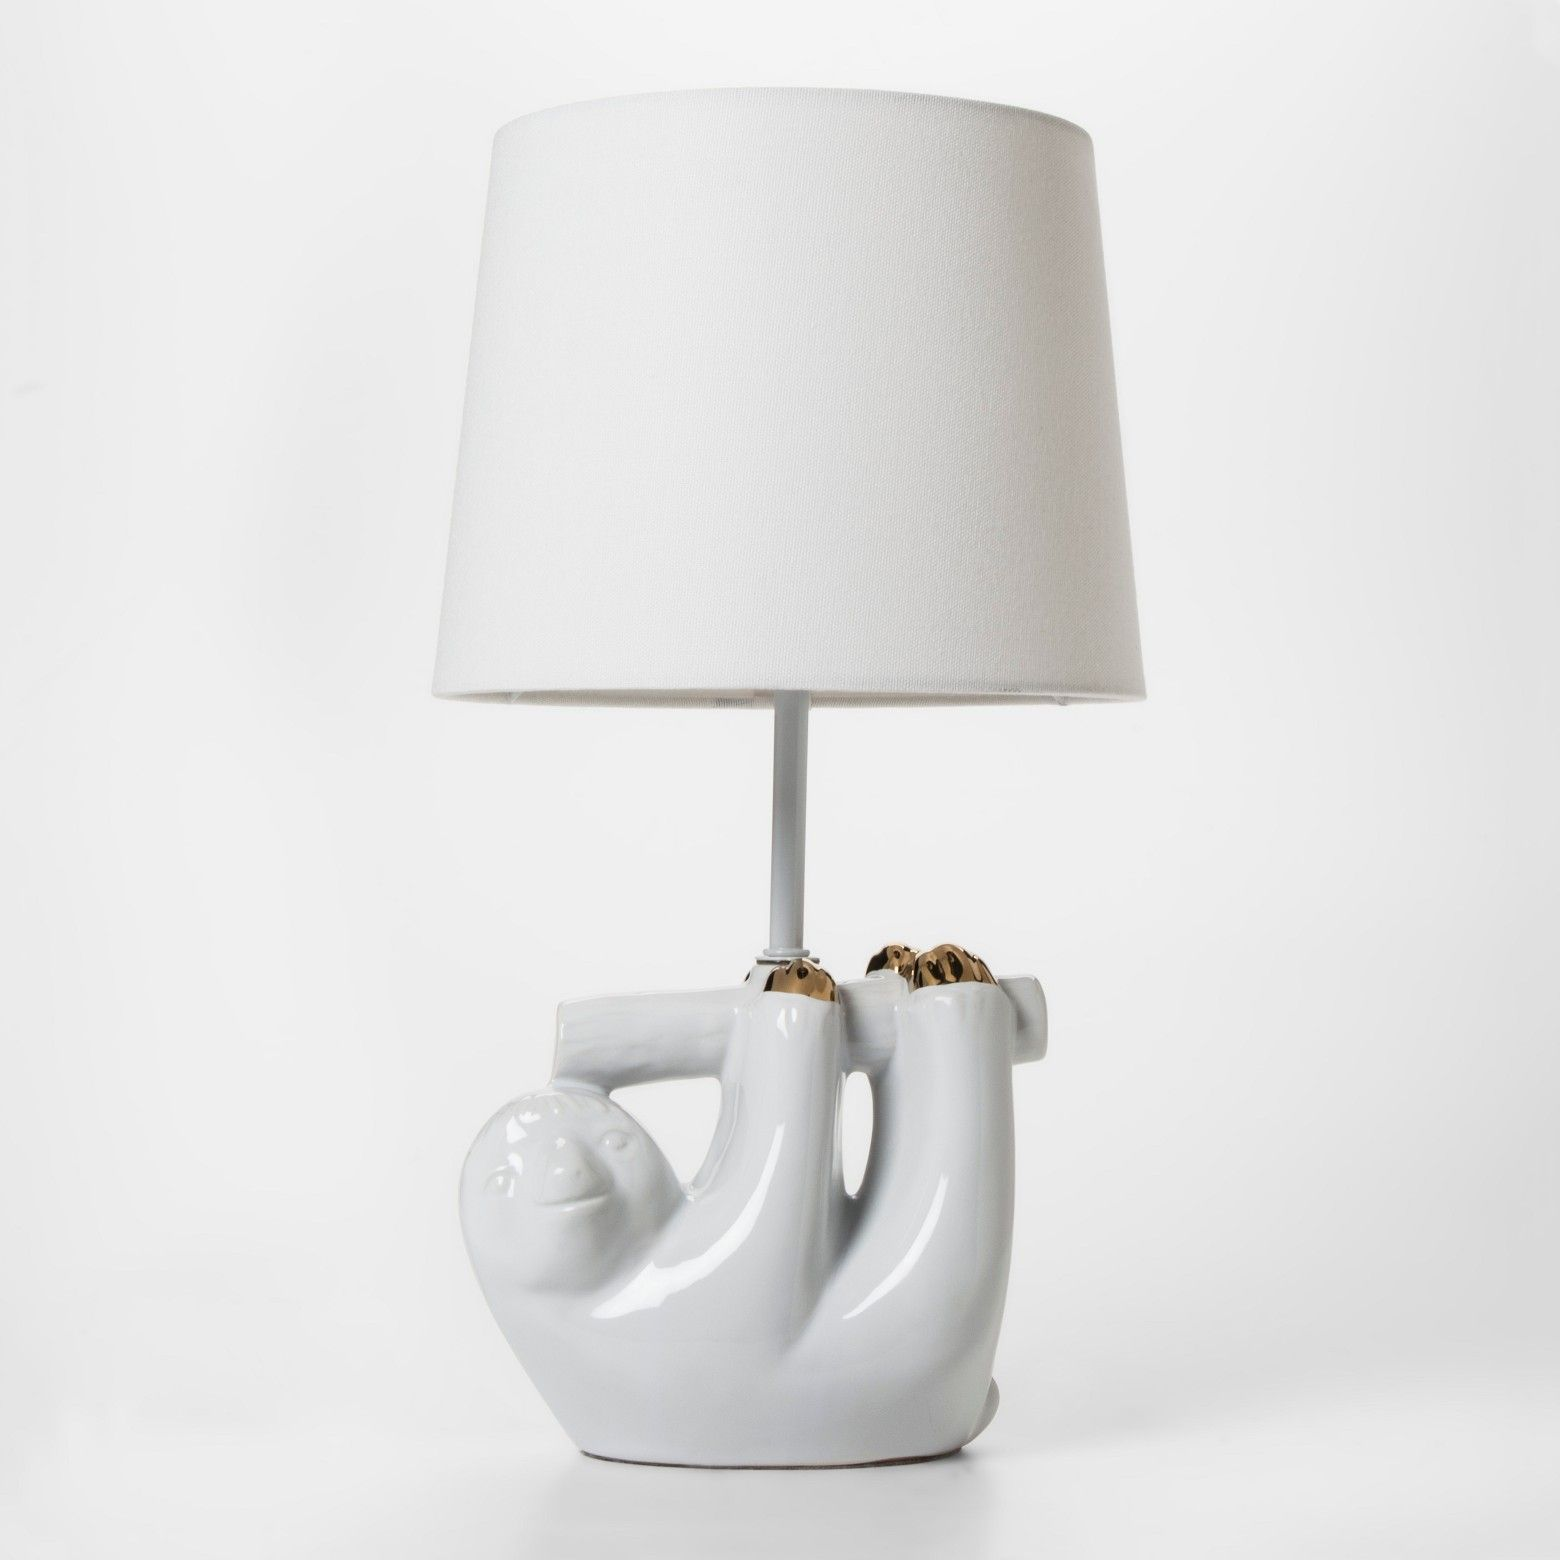 Shop Target For Kids Lamps Lighting You Will Love At Great Low